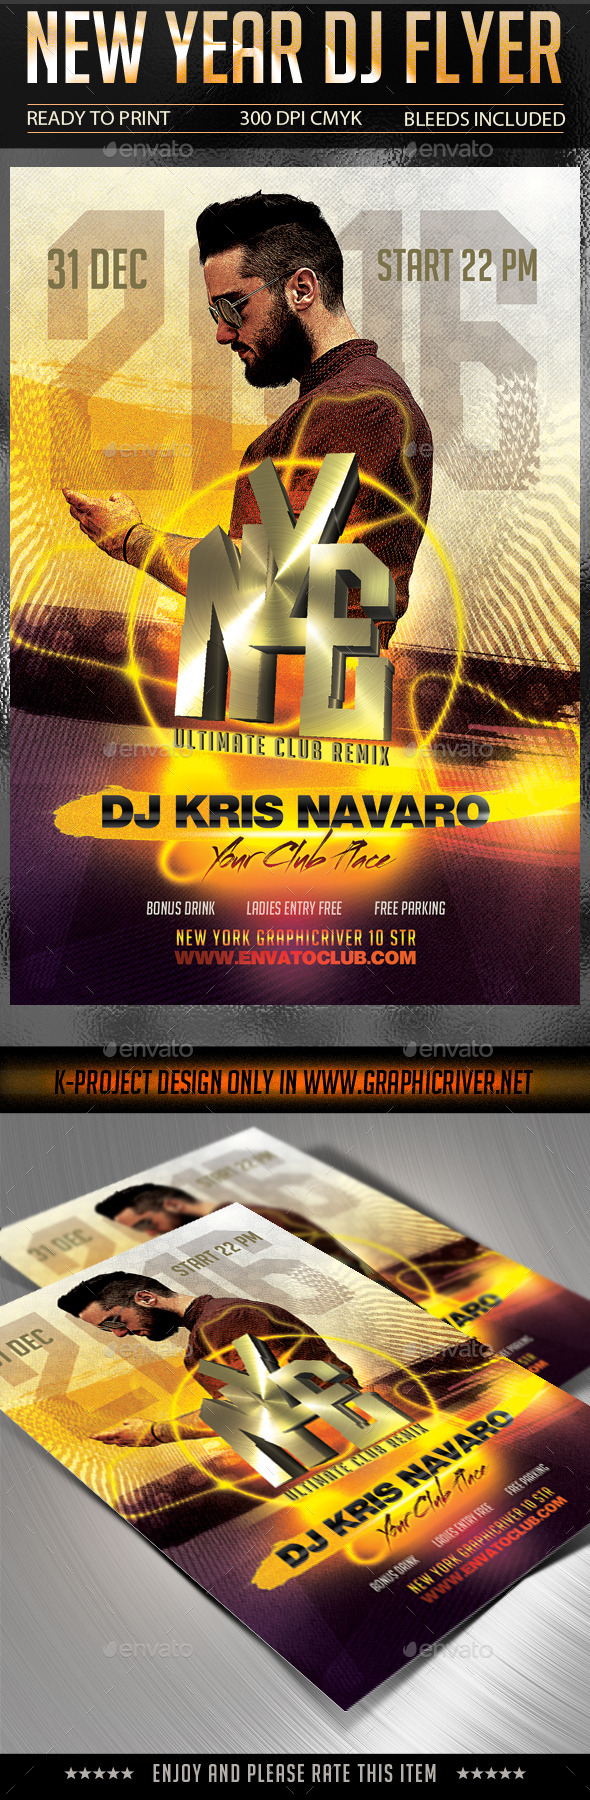 New Year DJ Flyer - Clubs & Parties Events